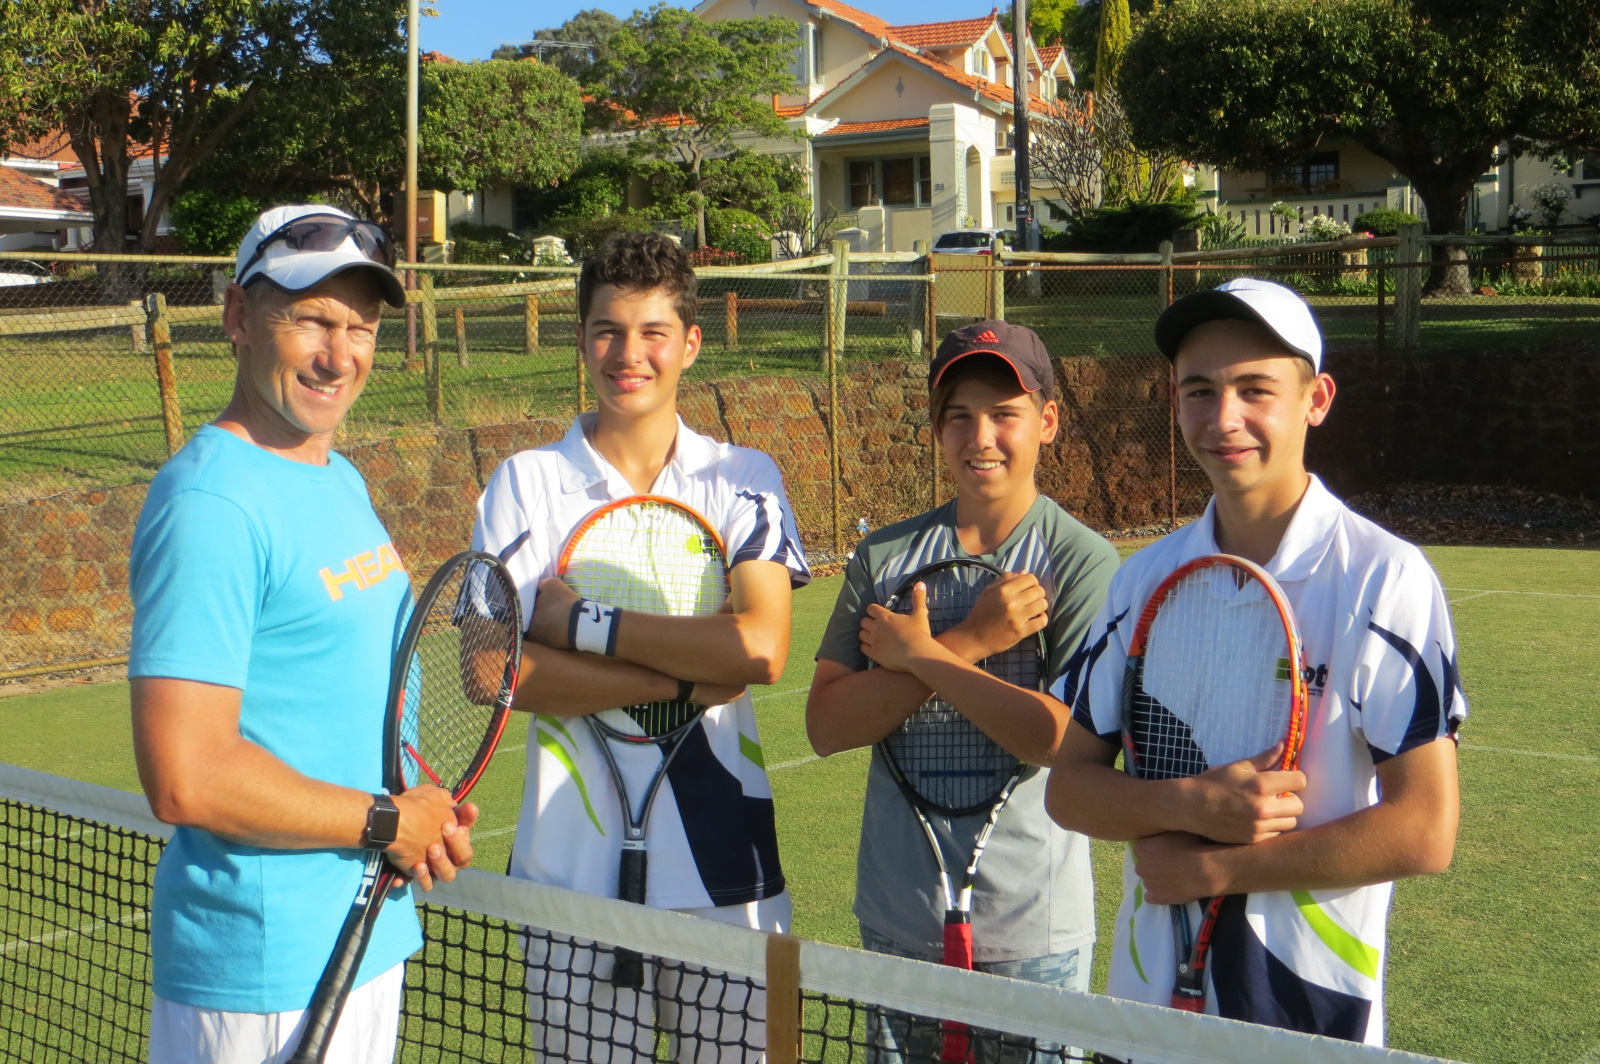 Alexander Park Tennis Club trio comprises entire State under-14s team for nationals